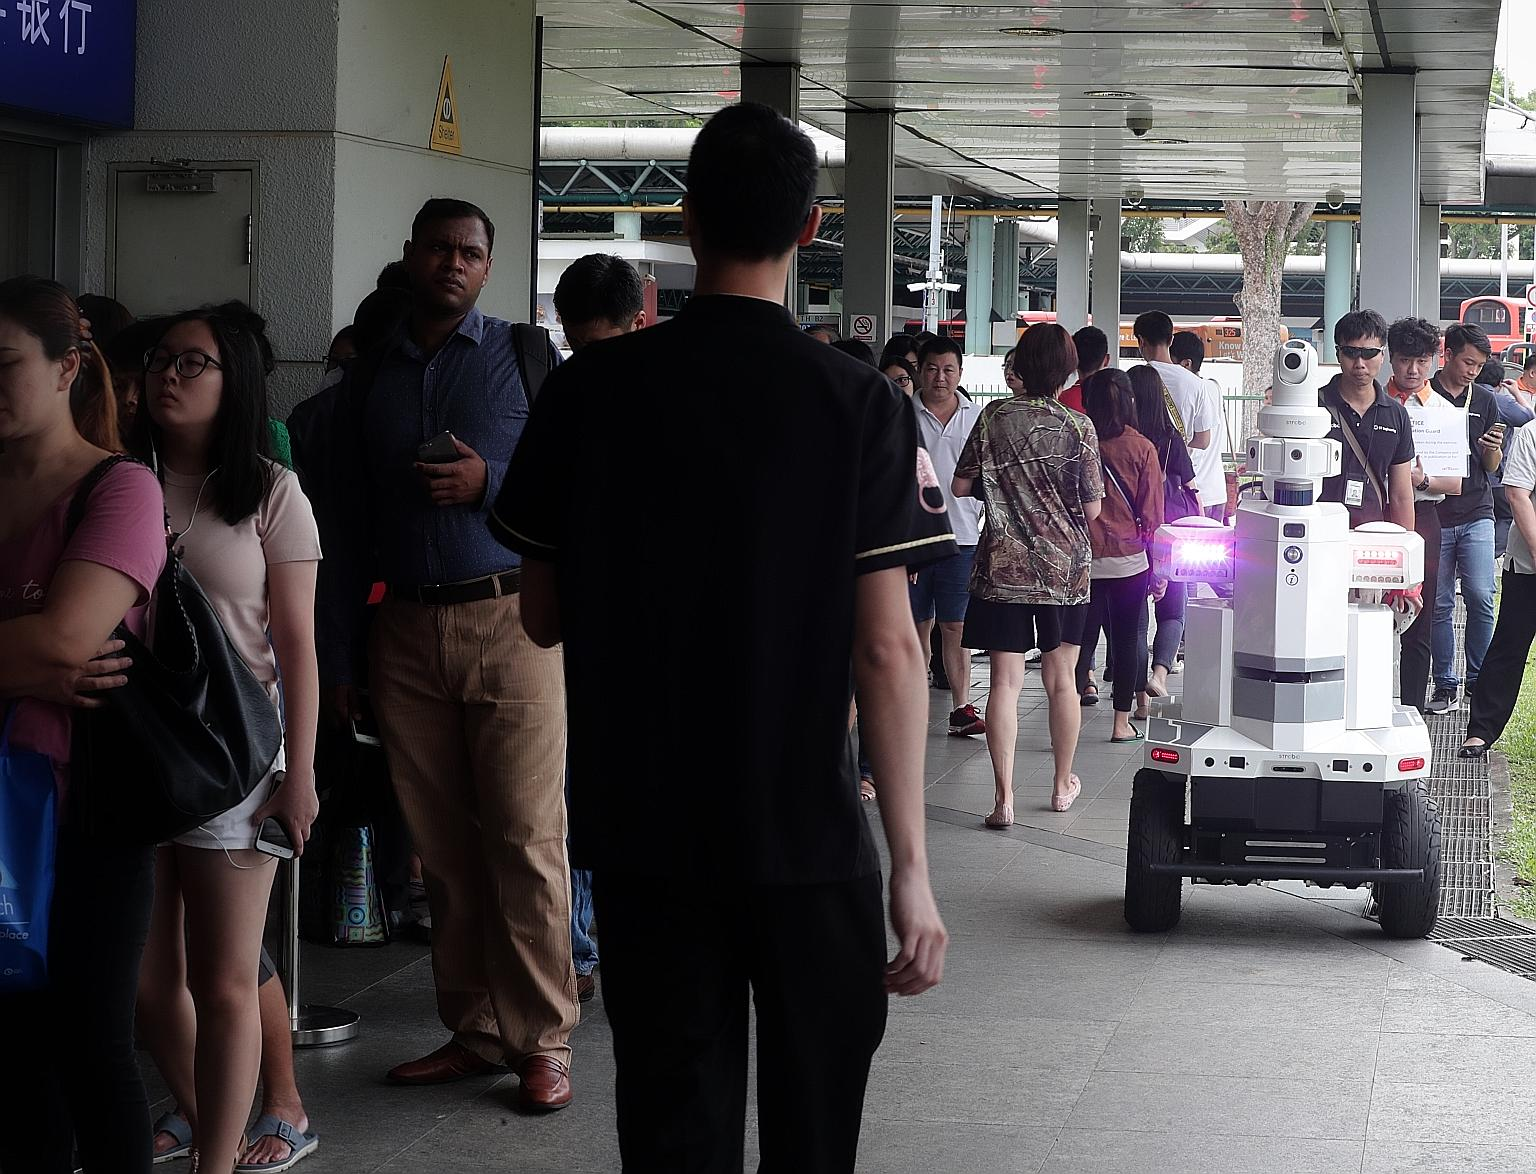 An autonomous robot kept an eye on Hougang MRT station yesterday as part of Exercise Station Guard, an emergency preparedness exercise by the Land Transport Authority (LTA).